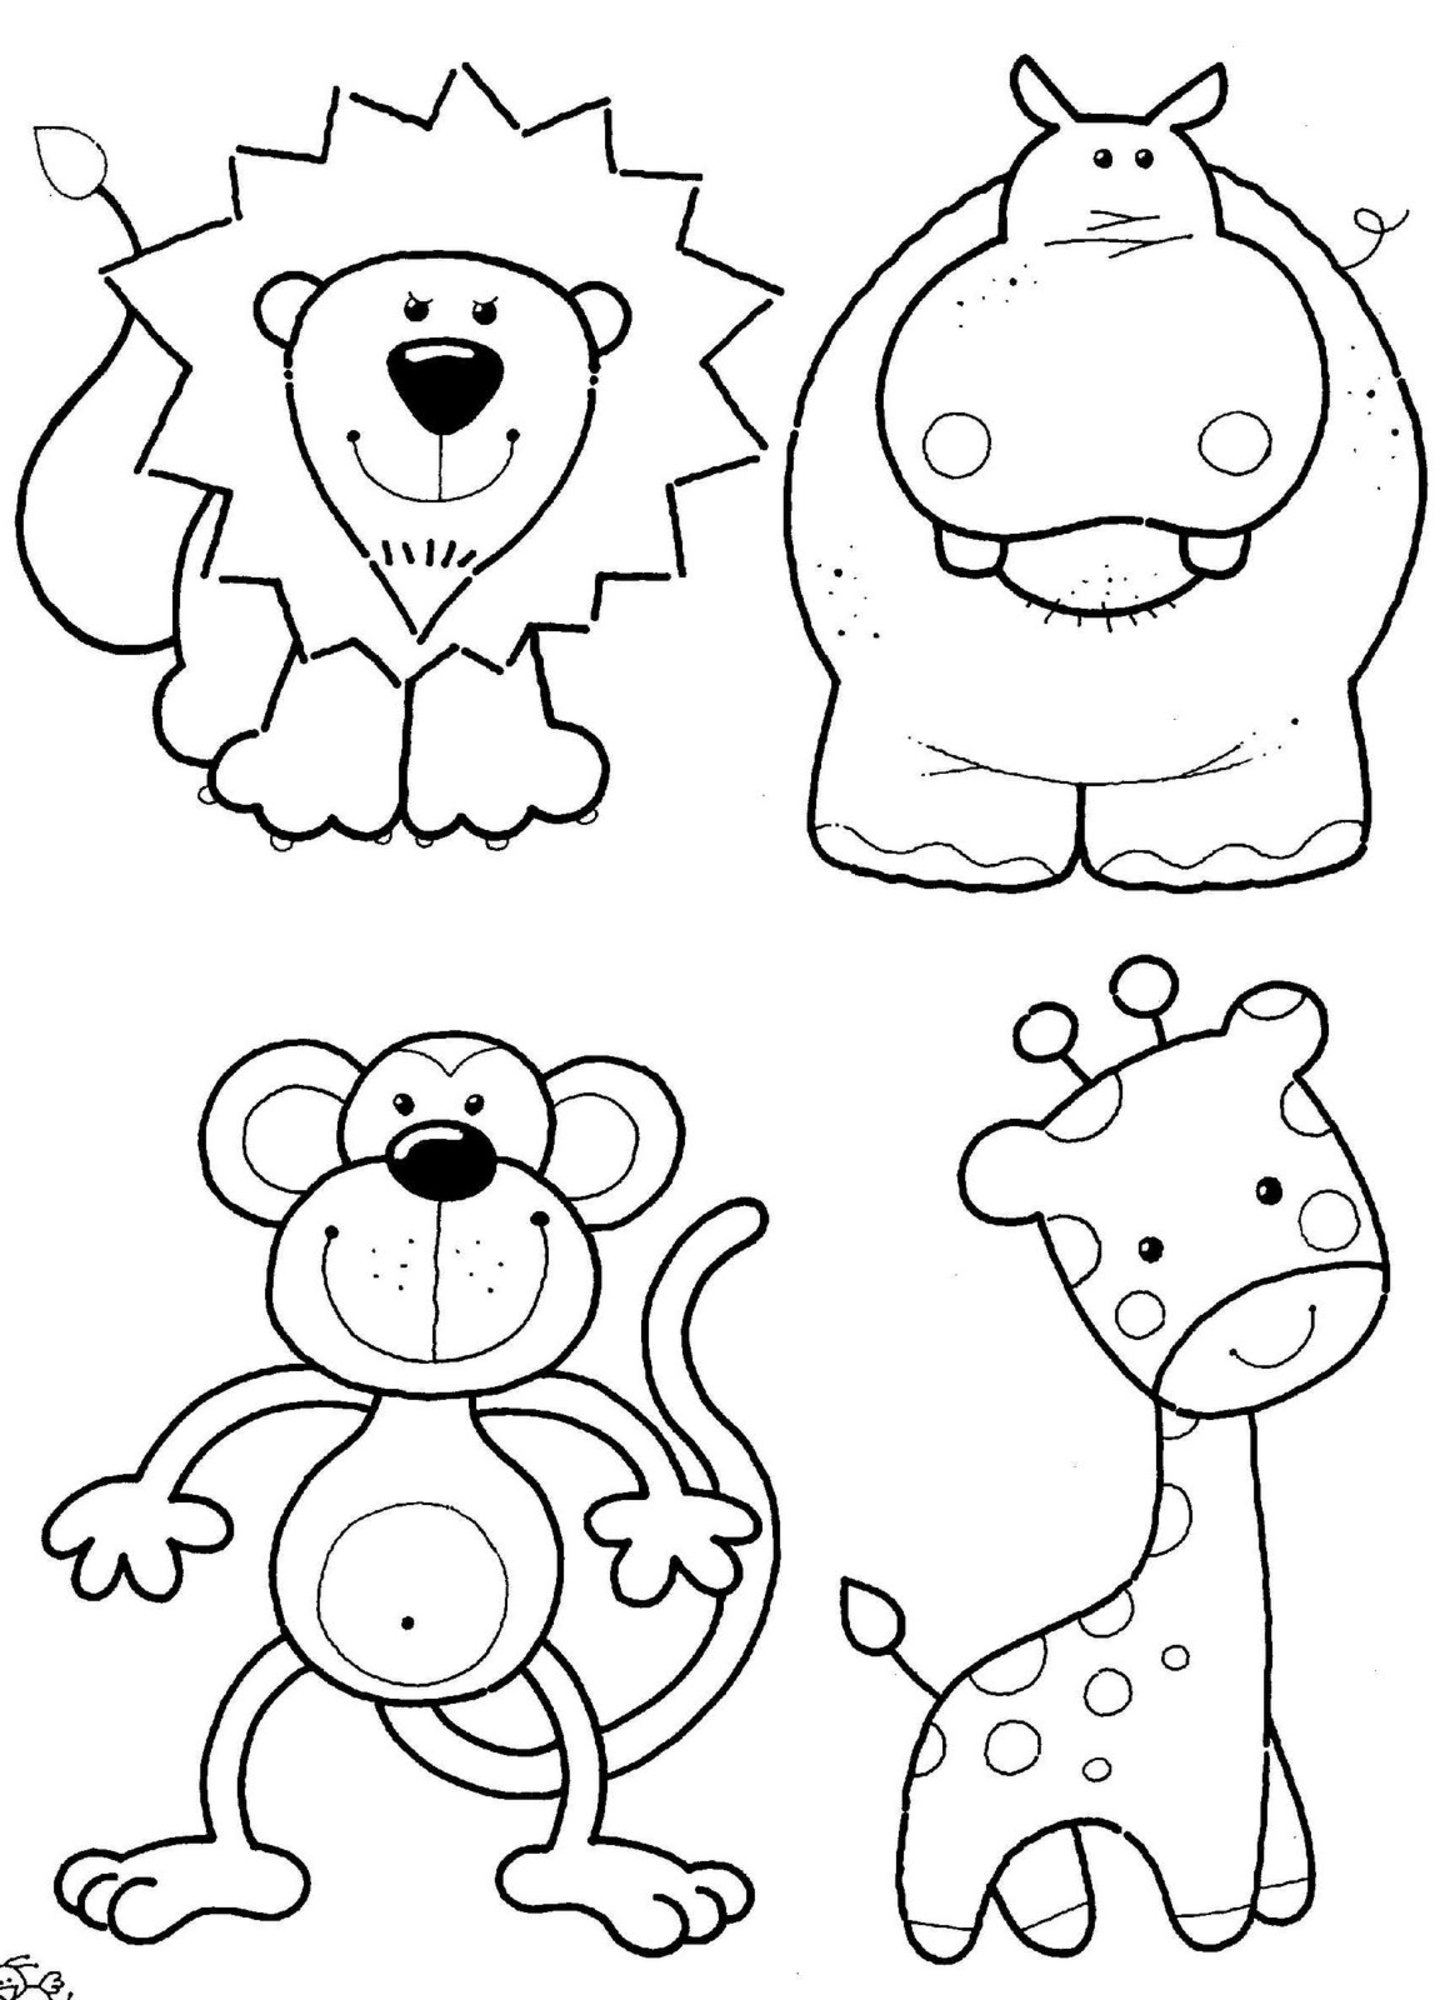 animal coloring pages for kids farm animal coloring pages to download and print for free kids for animal coloring pages